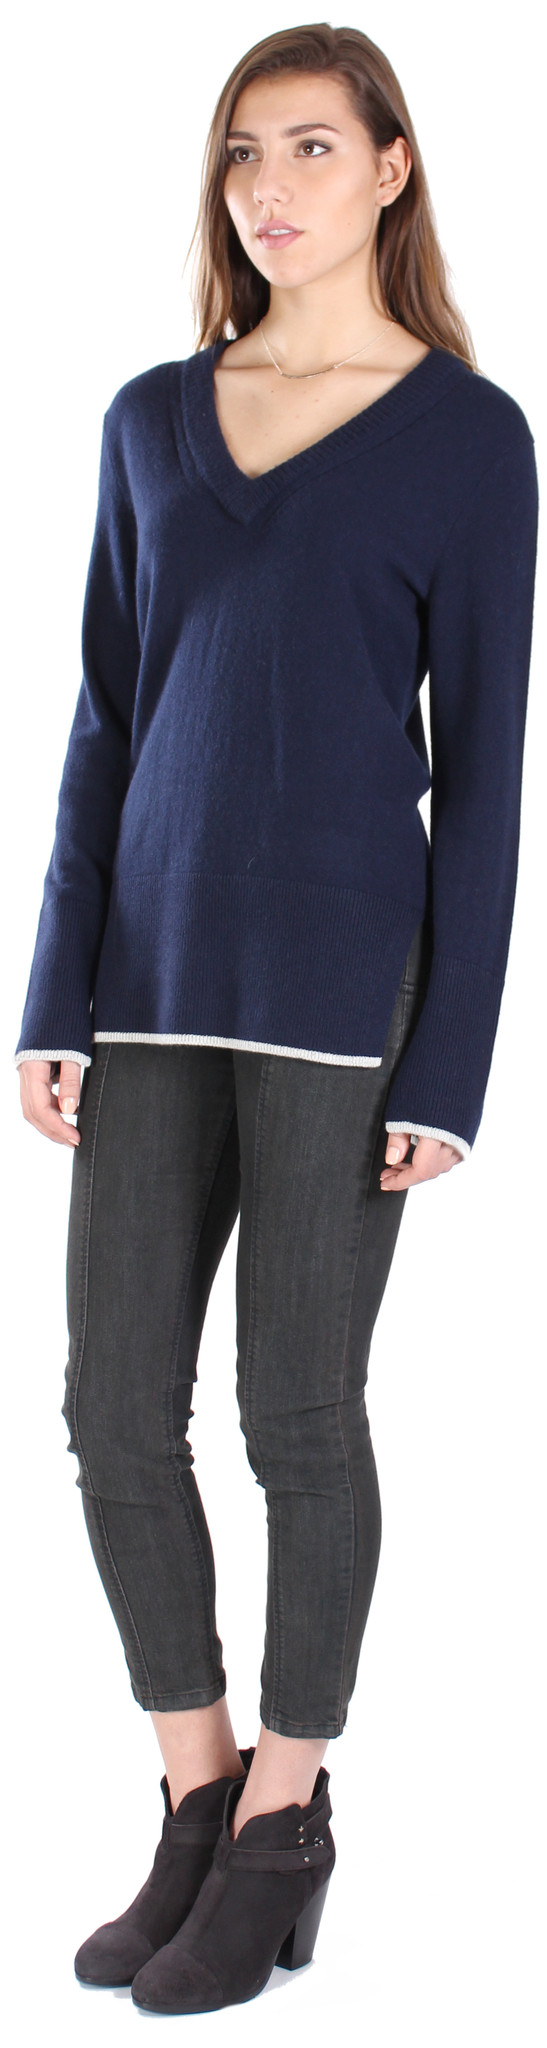 Rag & Bone Flavia V Neck Cashmere Sweater